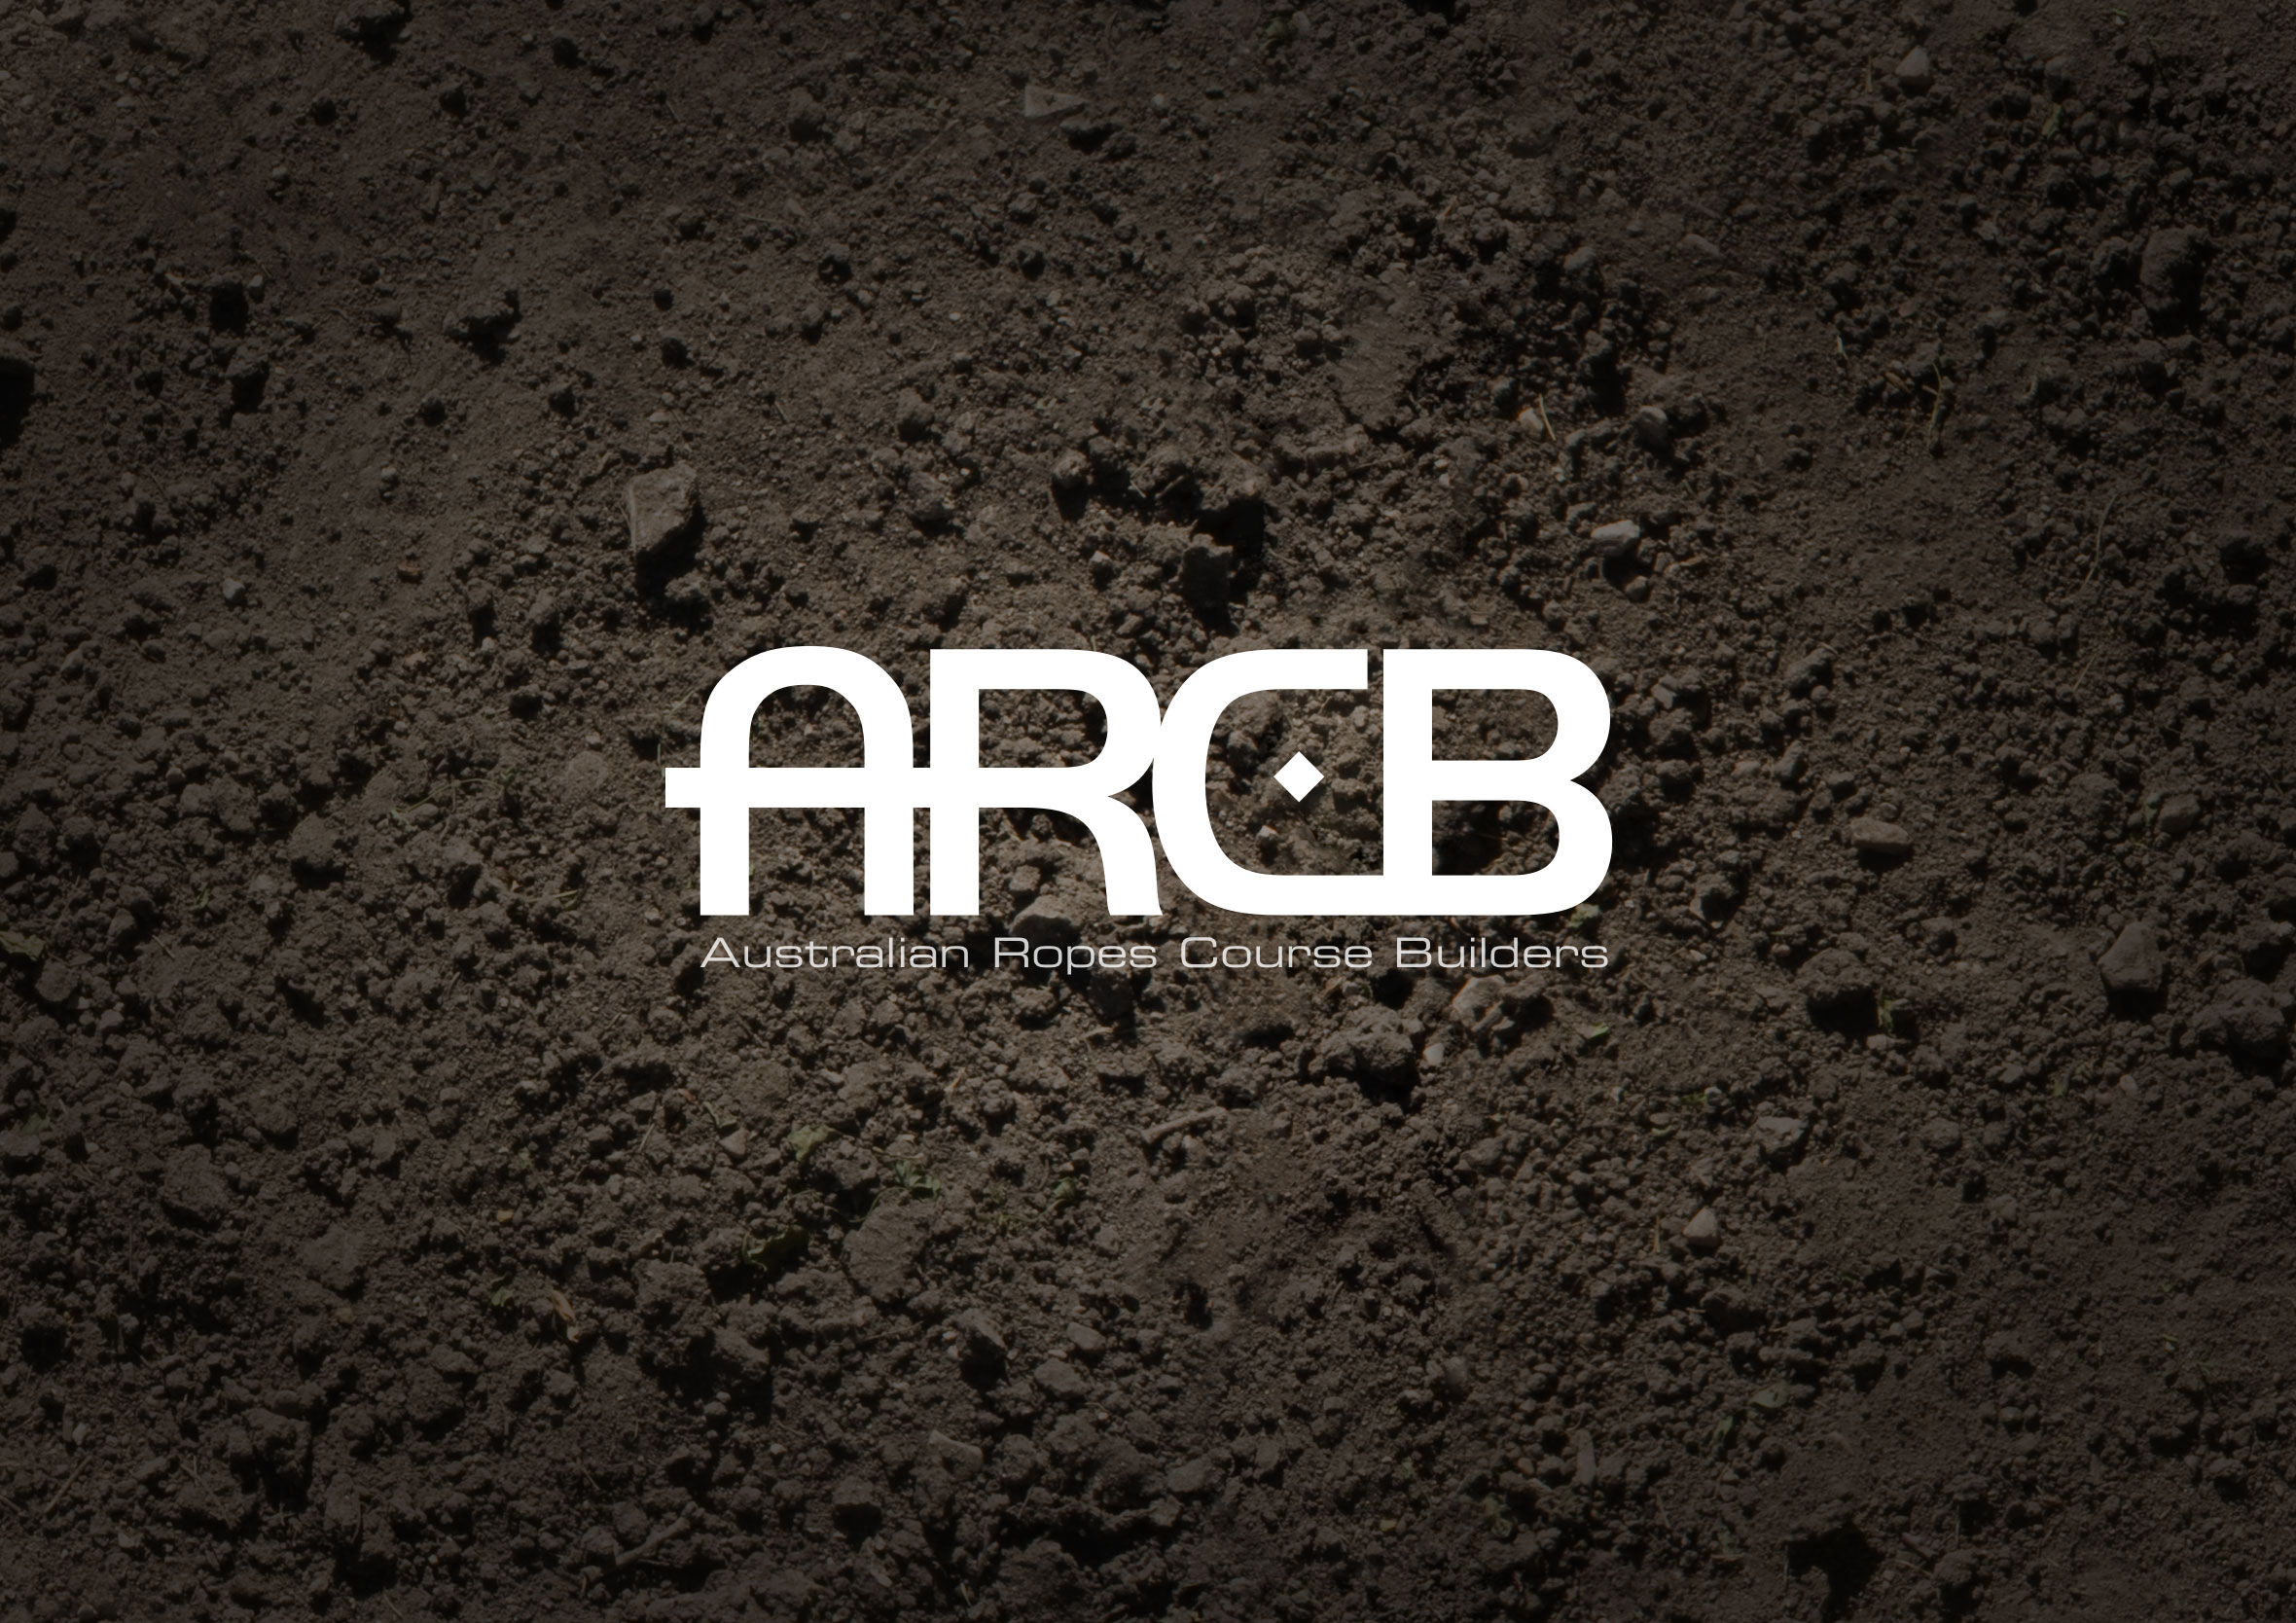 Australian Ropes Course Builders (ARCB) logo - dark version